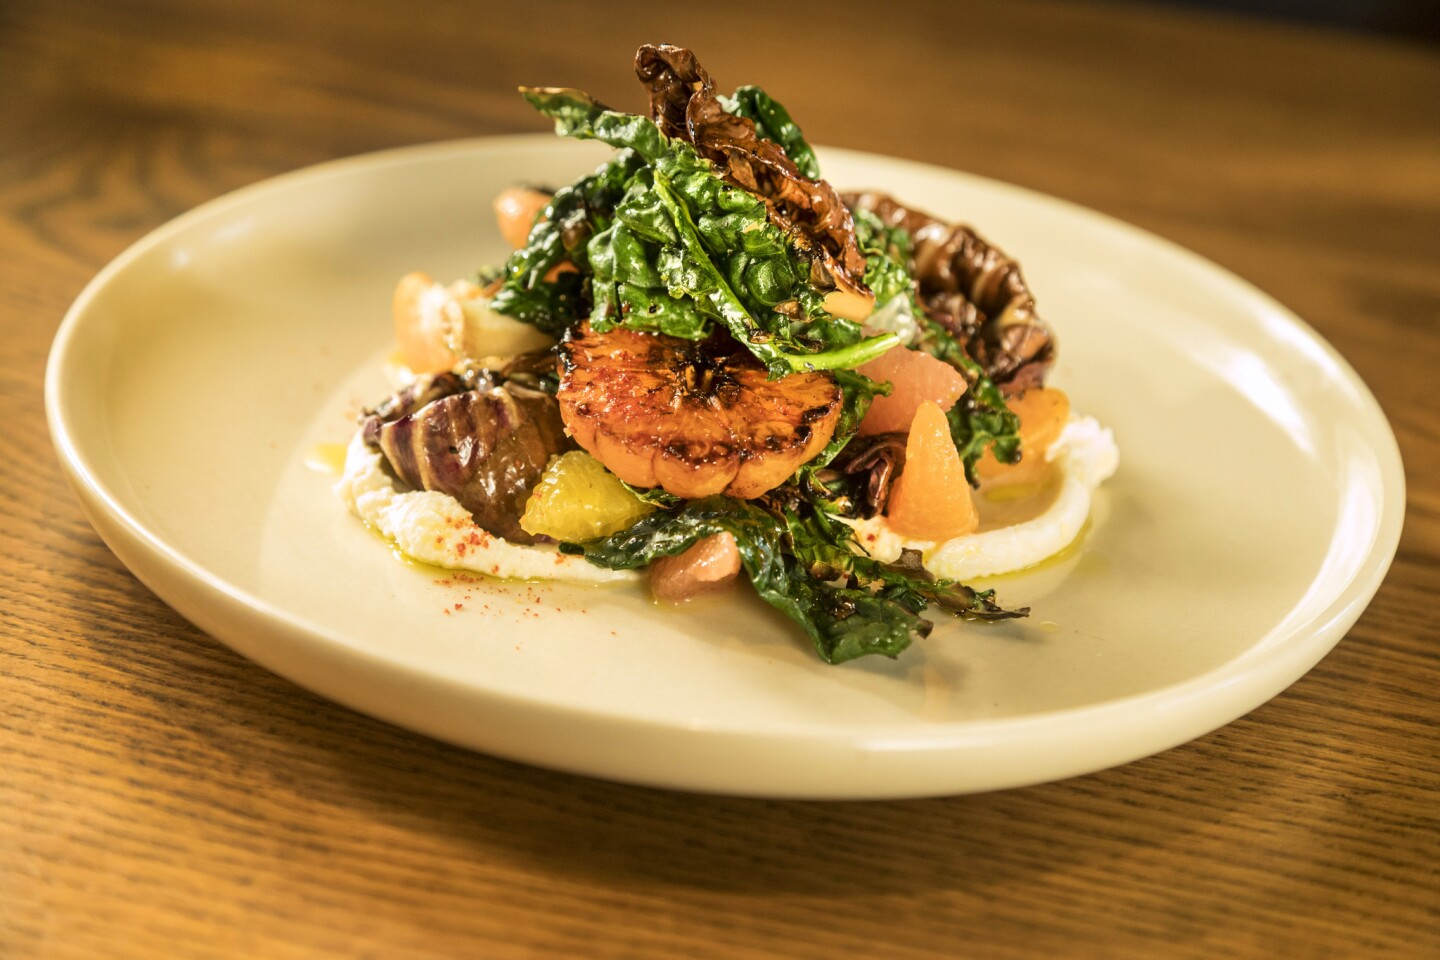 Charred chicories with citrus, pistachios and forage blanc. In addition to a lively bar, the Hearth & Hound offers a wine list pulled together by Beastie Boy Mike D.